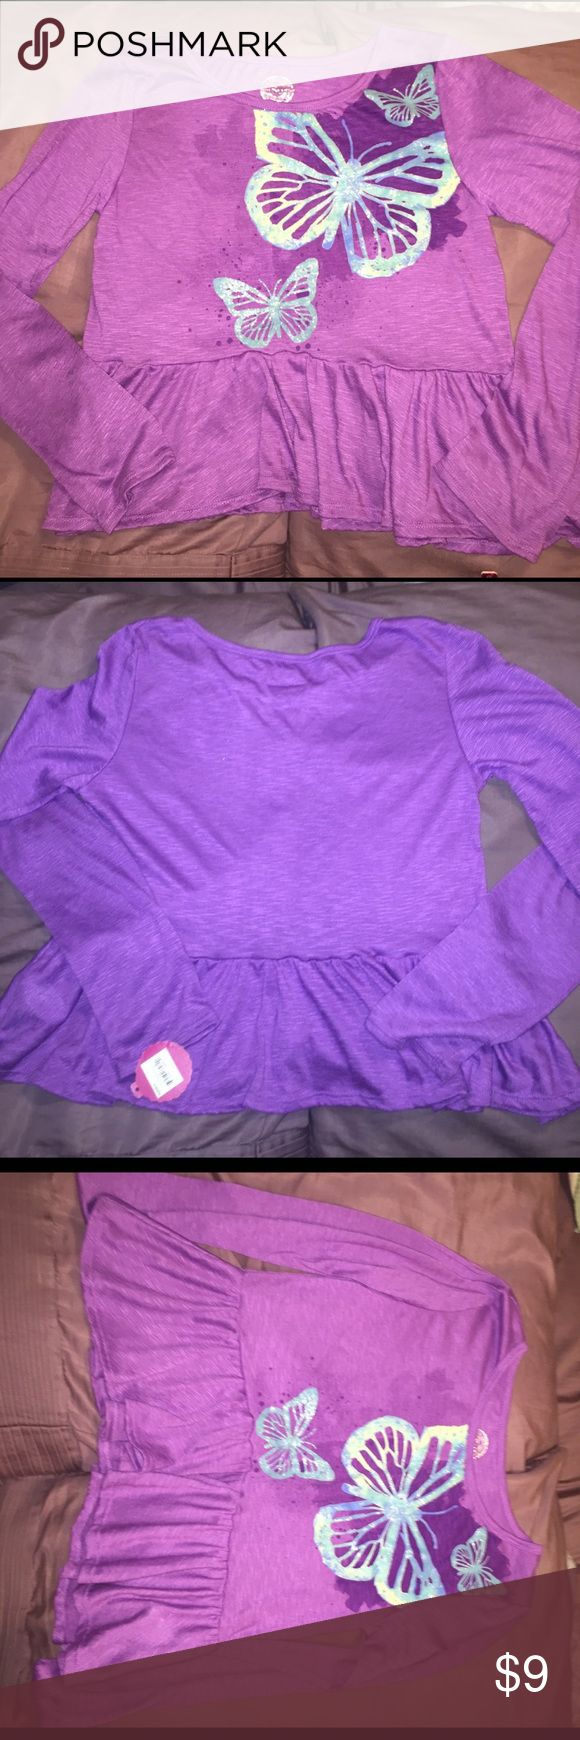 NWT SO girls size 16 long sleeved top💖 SO purple long sleeved top no really cropped but a little short, wit butterflies on the front, size 16 SO Shirts & Tops Blouses